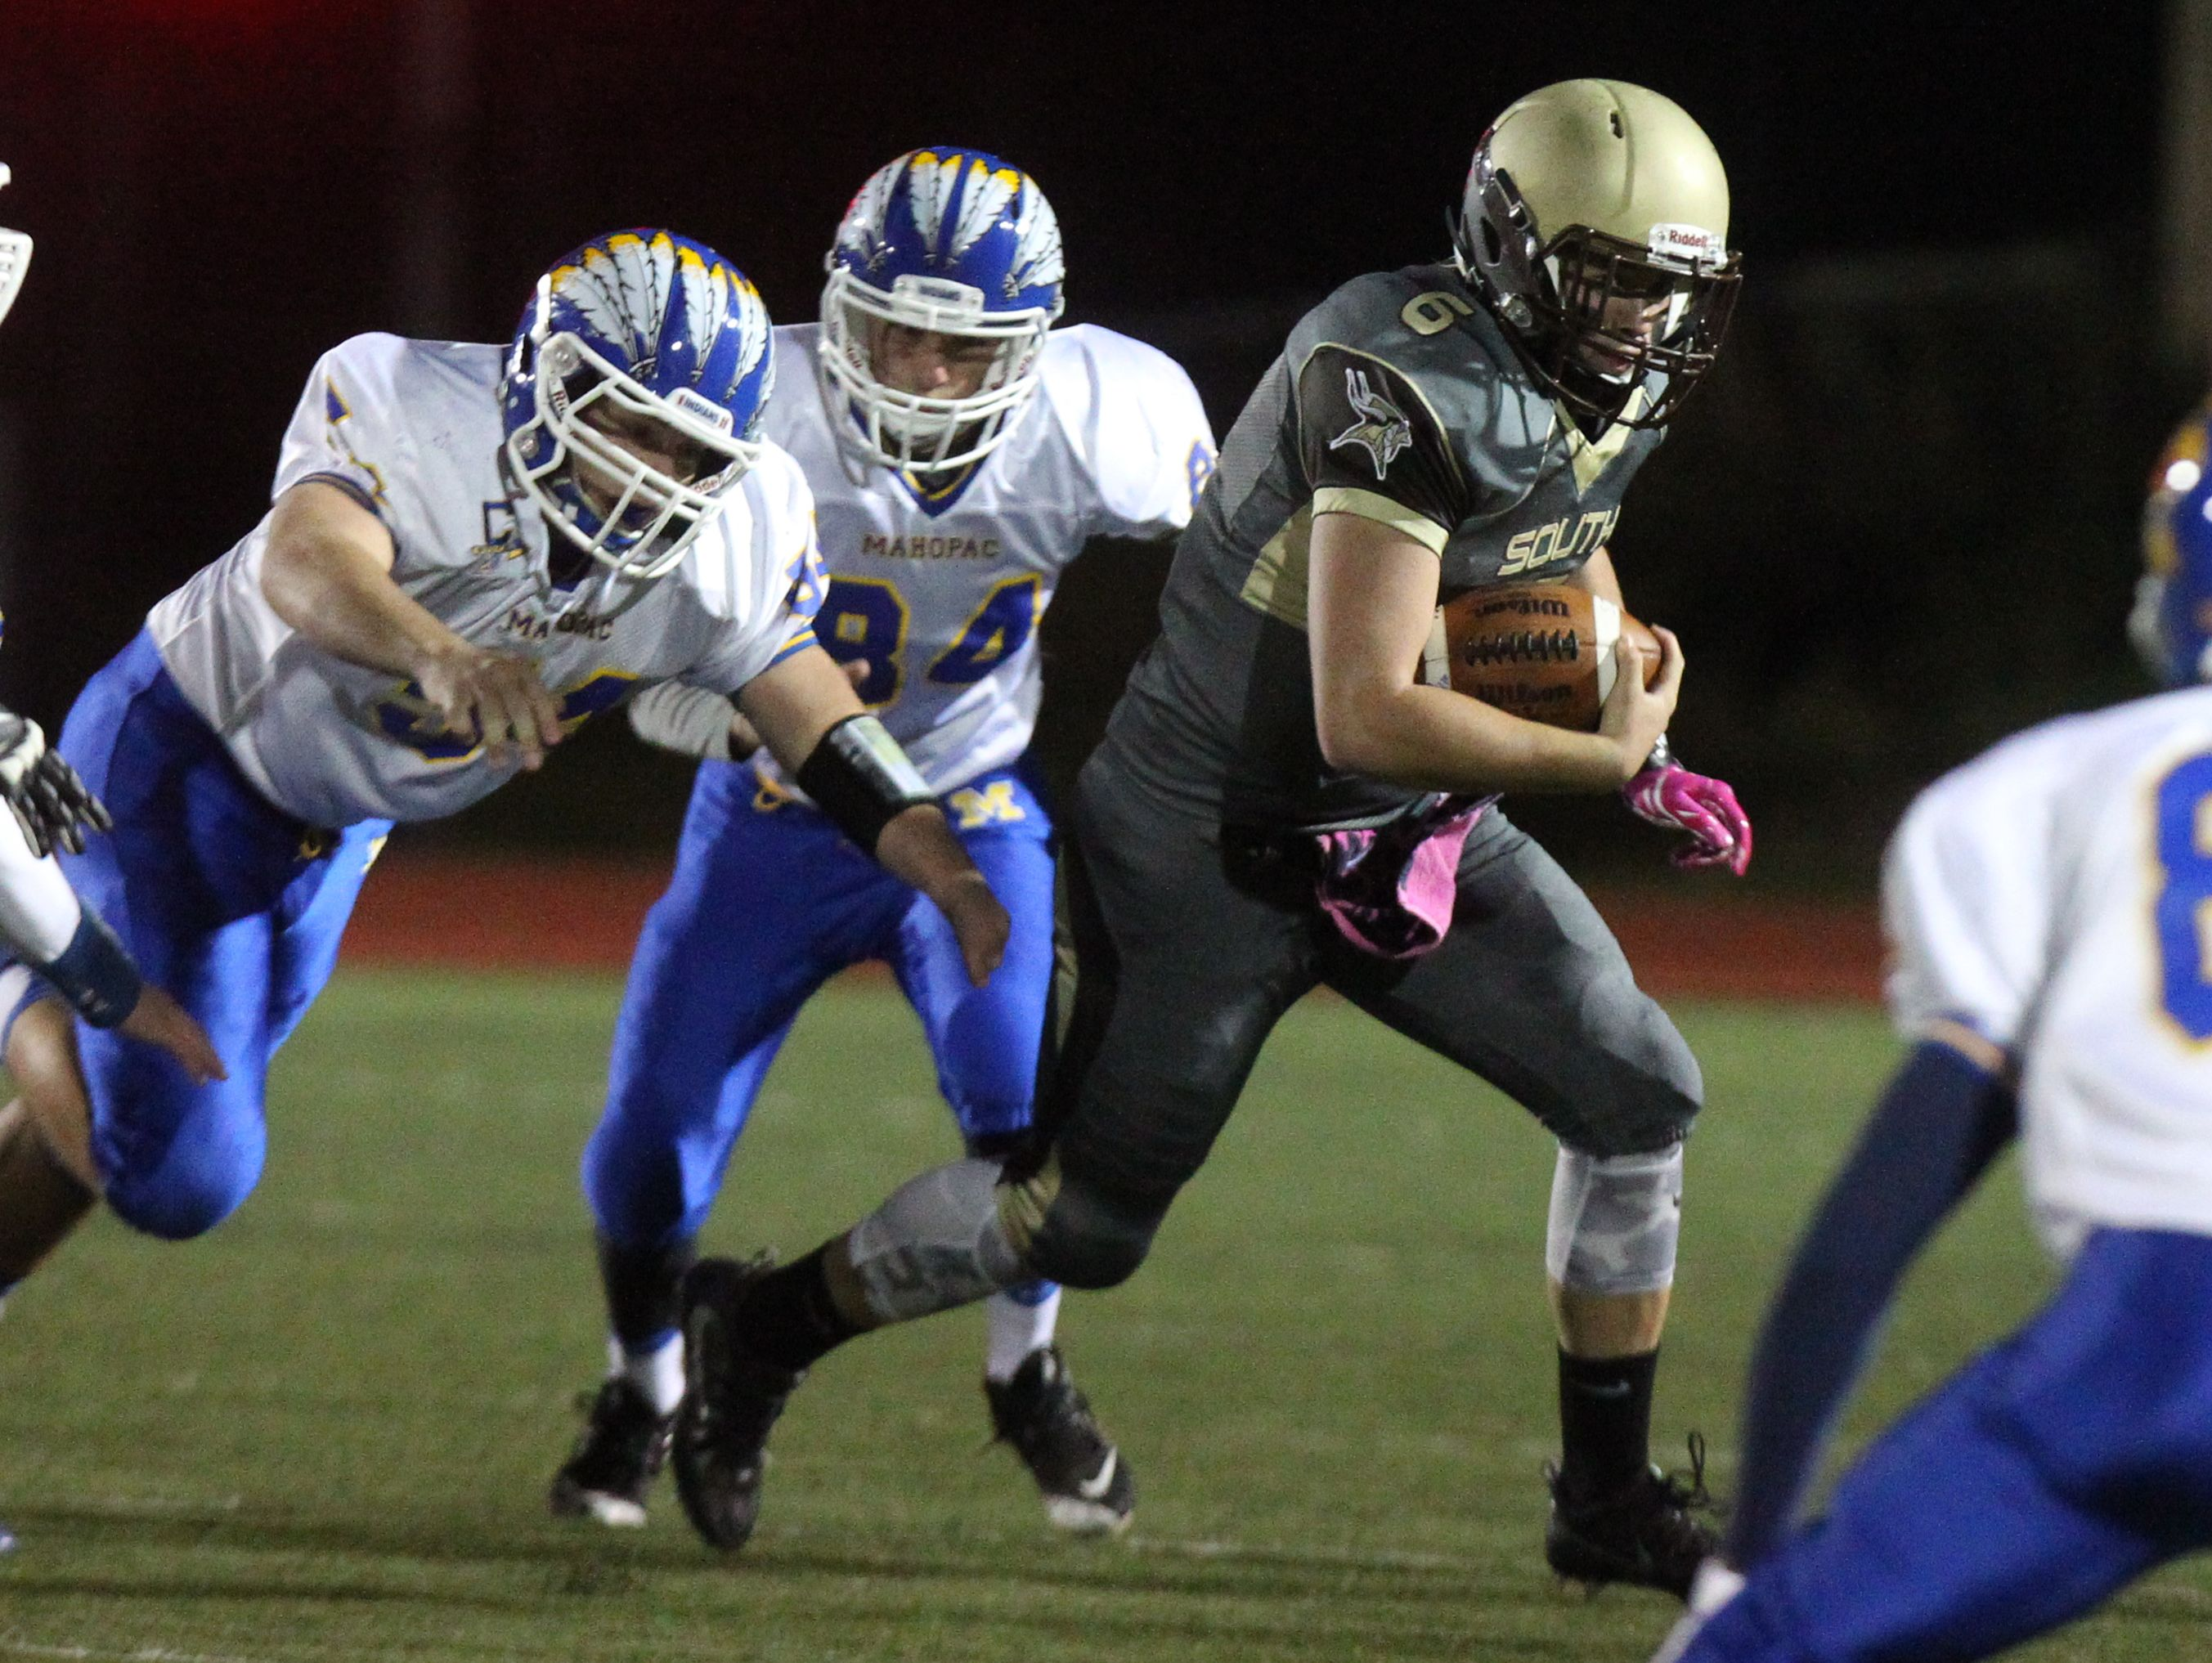 Clarkstown South quarterback Matt Jung carries the ball during a Class AA playoff game at with Mahopac at Clarkstown South Oct. 14, 2016.